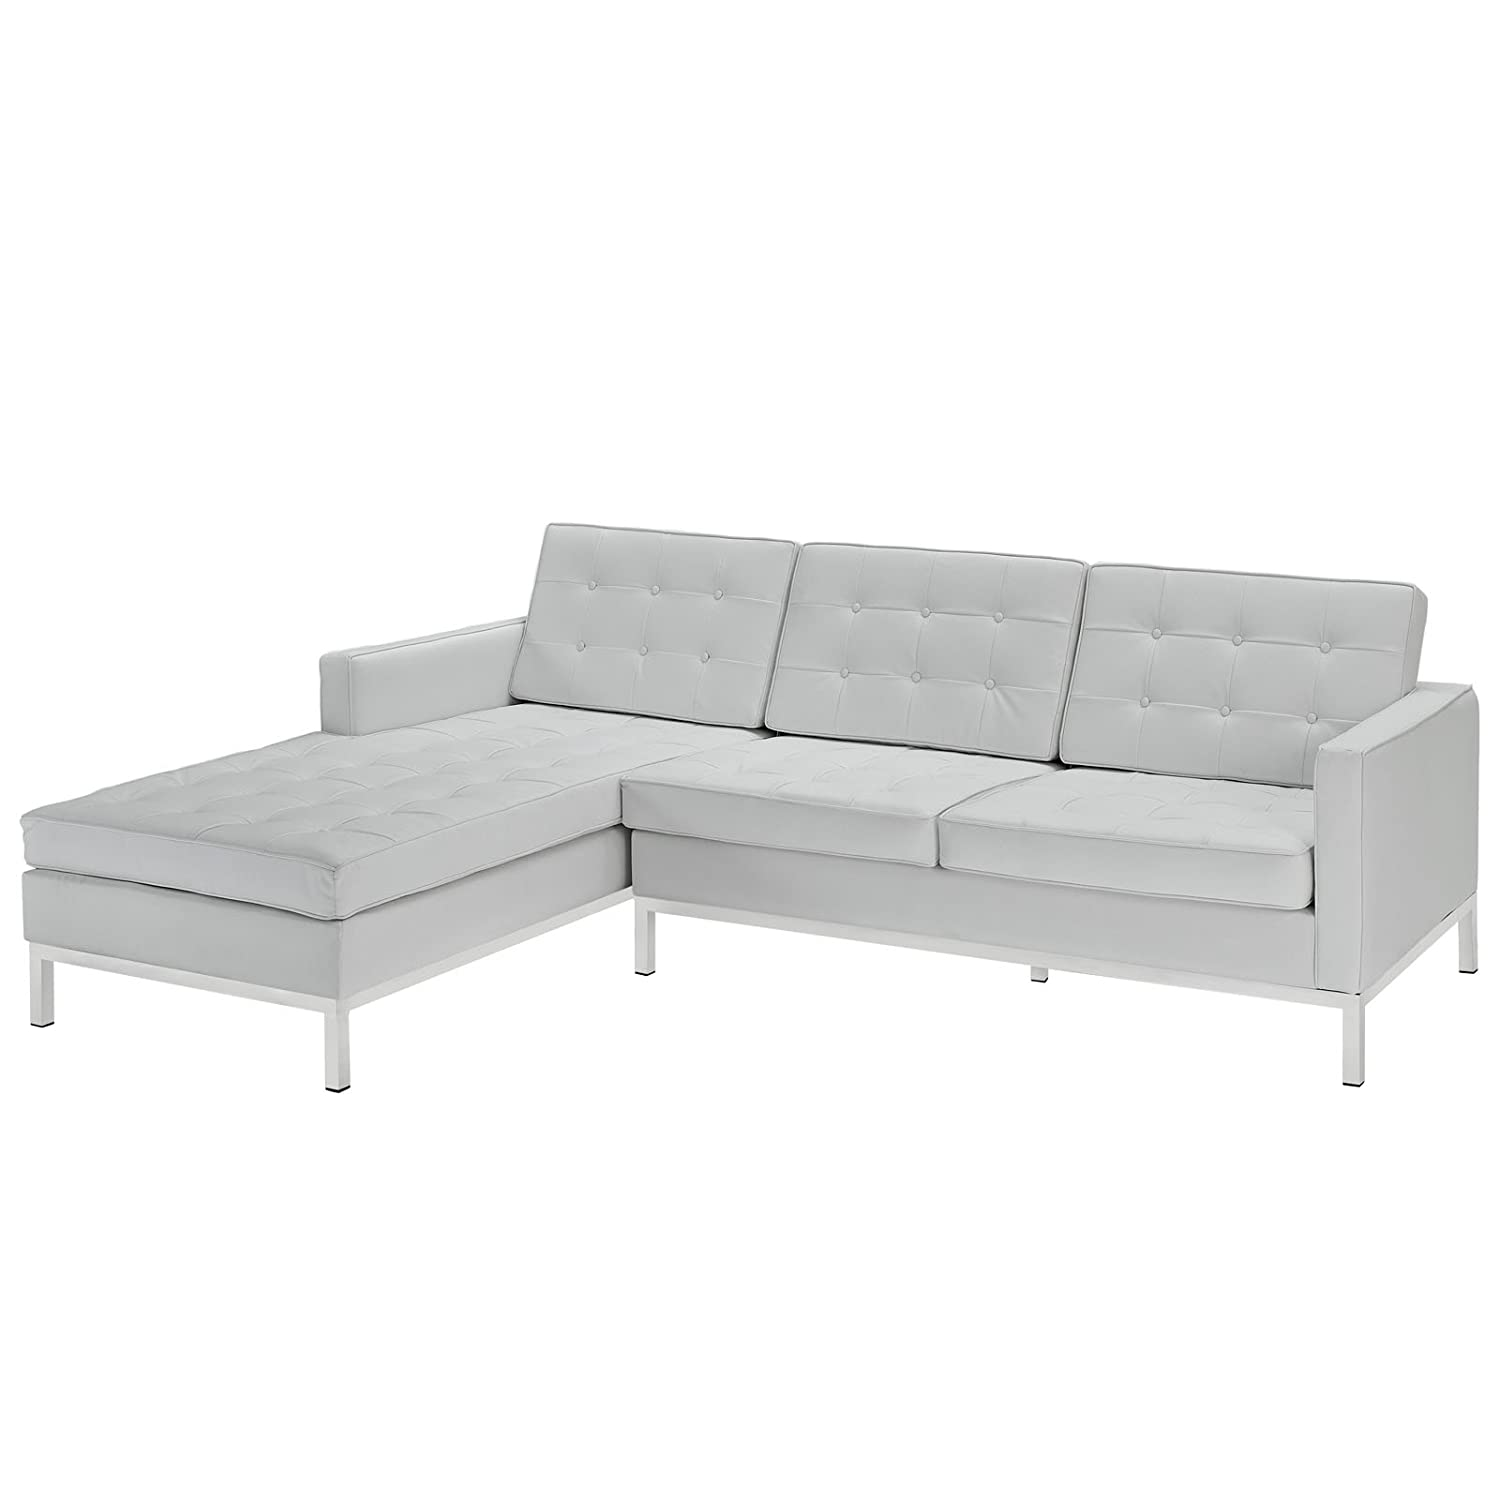 LexMod Florence Style Left-Arm Corner Sectional Leather Sofa - White